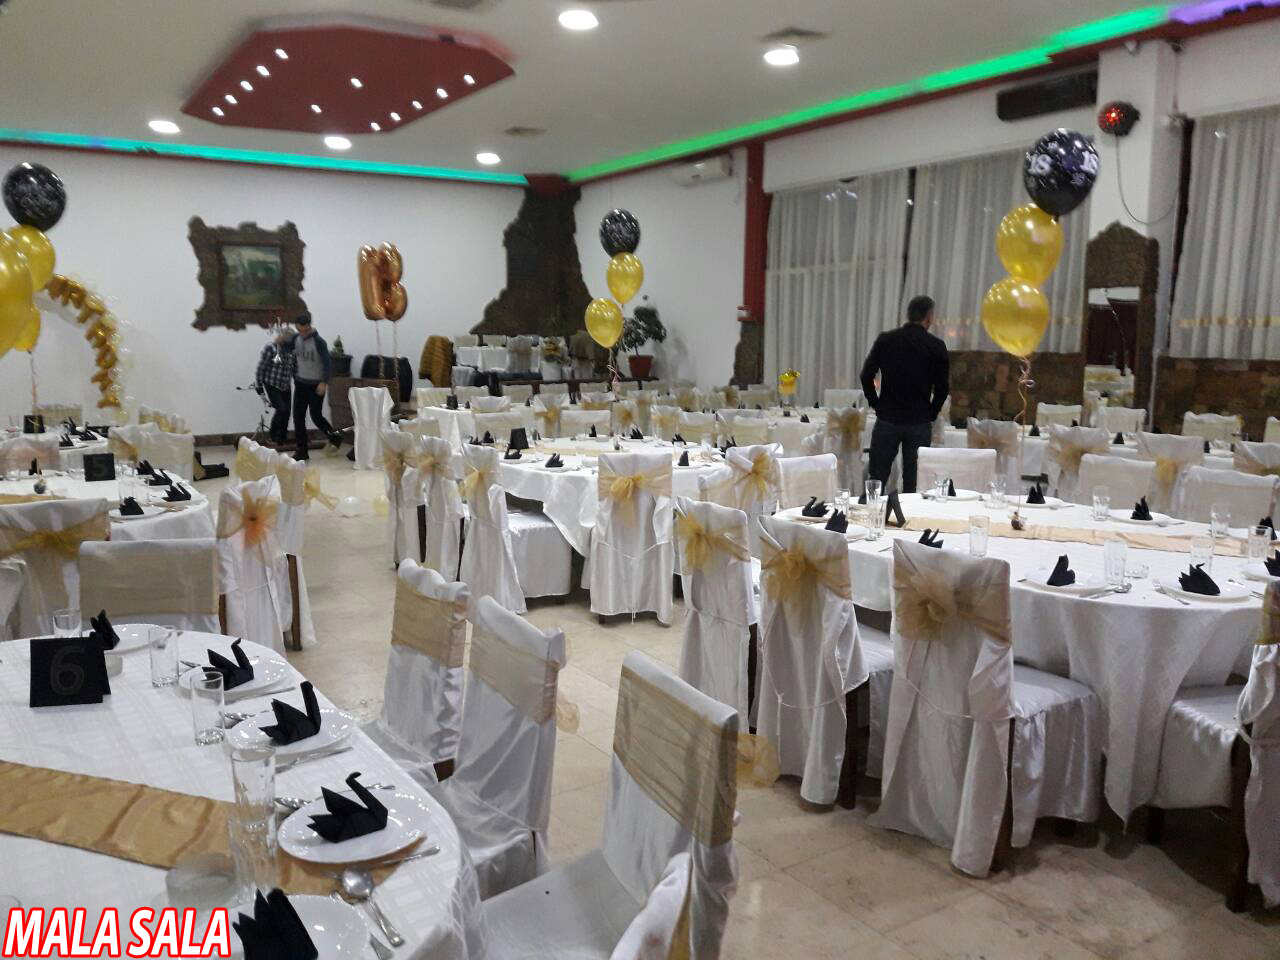 GRAND HALL KACAREVO AND CAFFE GRILL TICINO Renting halls Pancevo - Photo 3